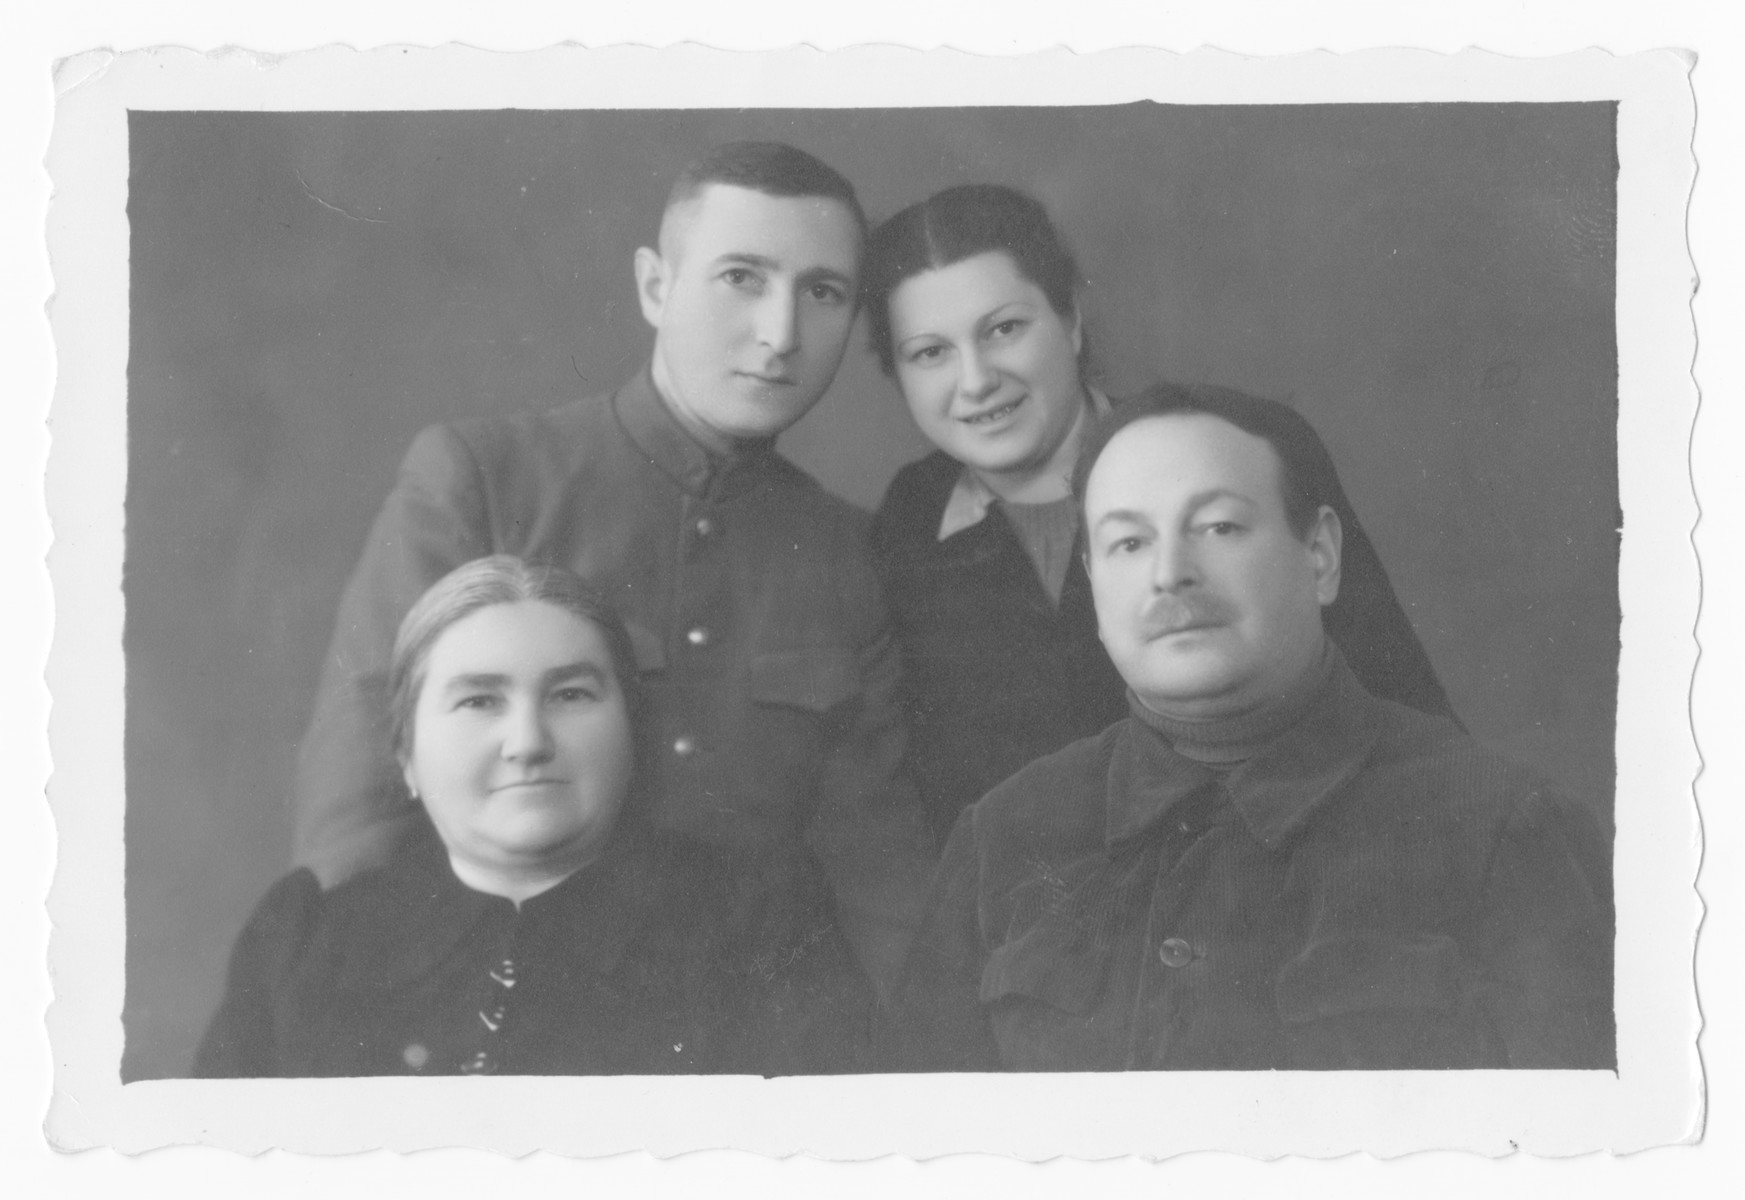 Postwar portrait of the Tenin family.  Pictuured are Moshe and Golda Tenin with their two surviving children, Boris and Klara.